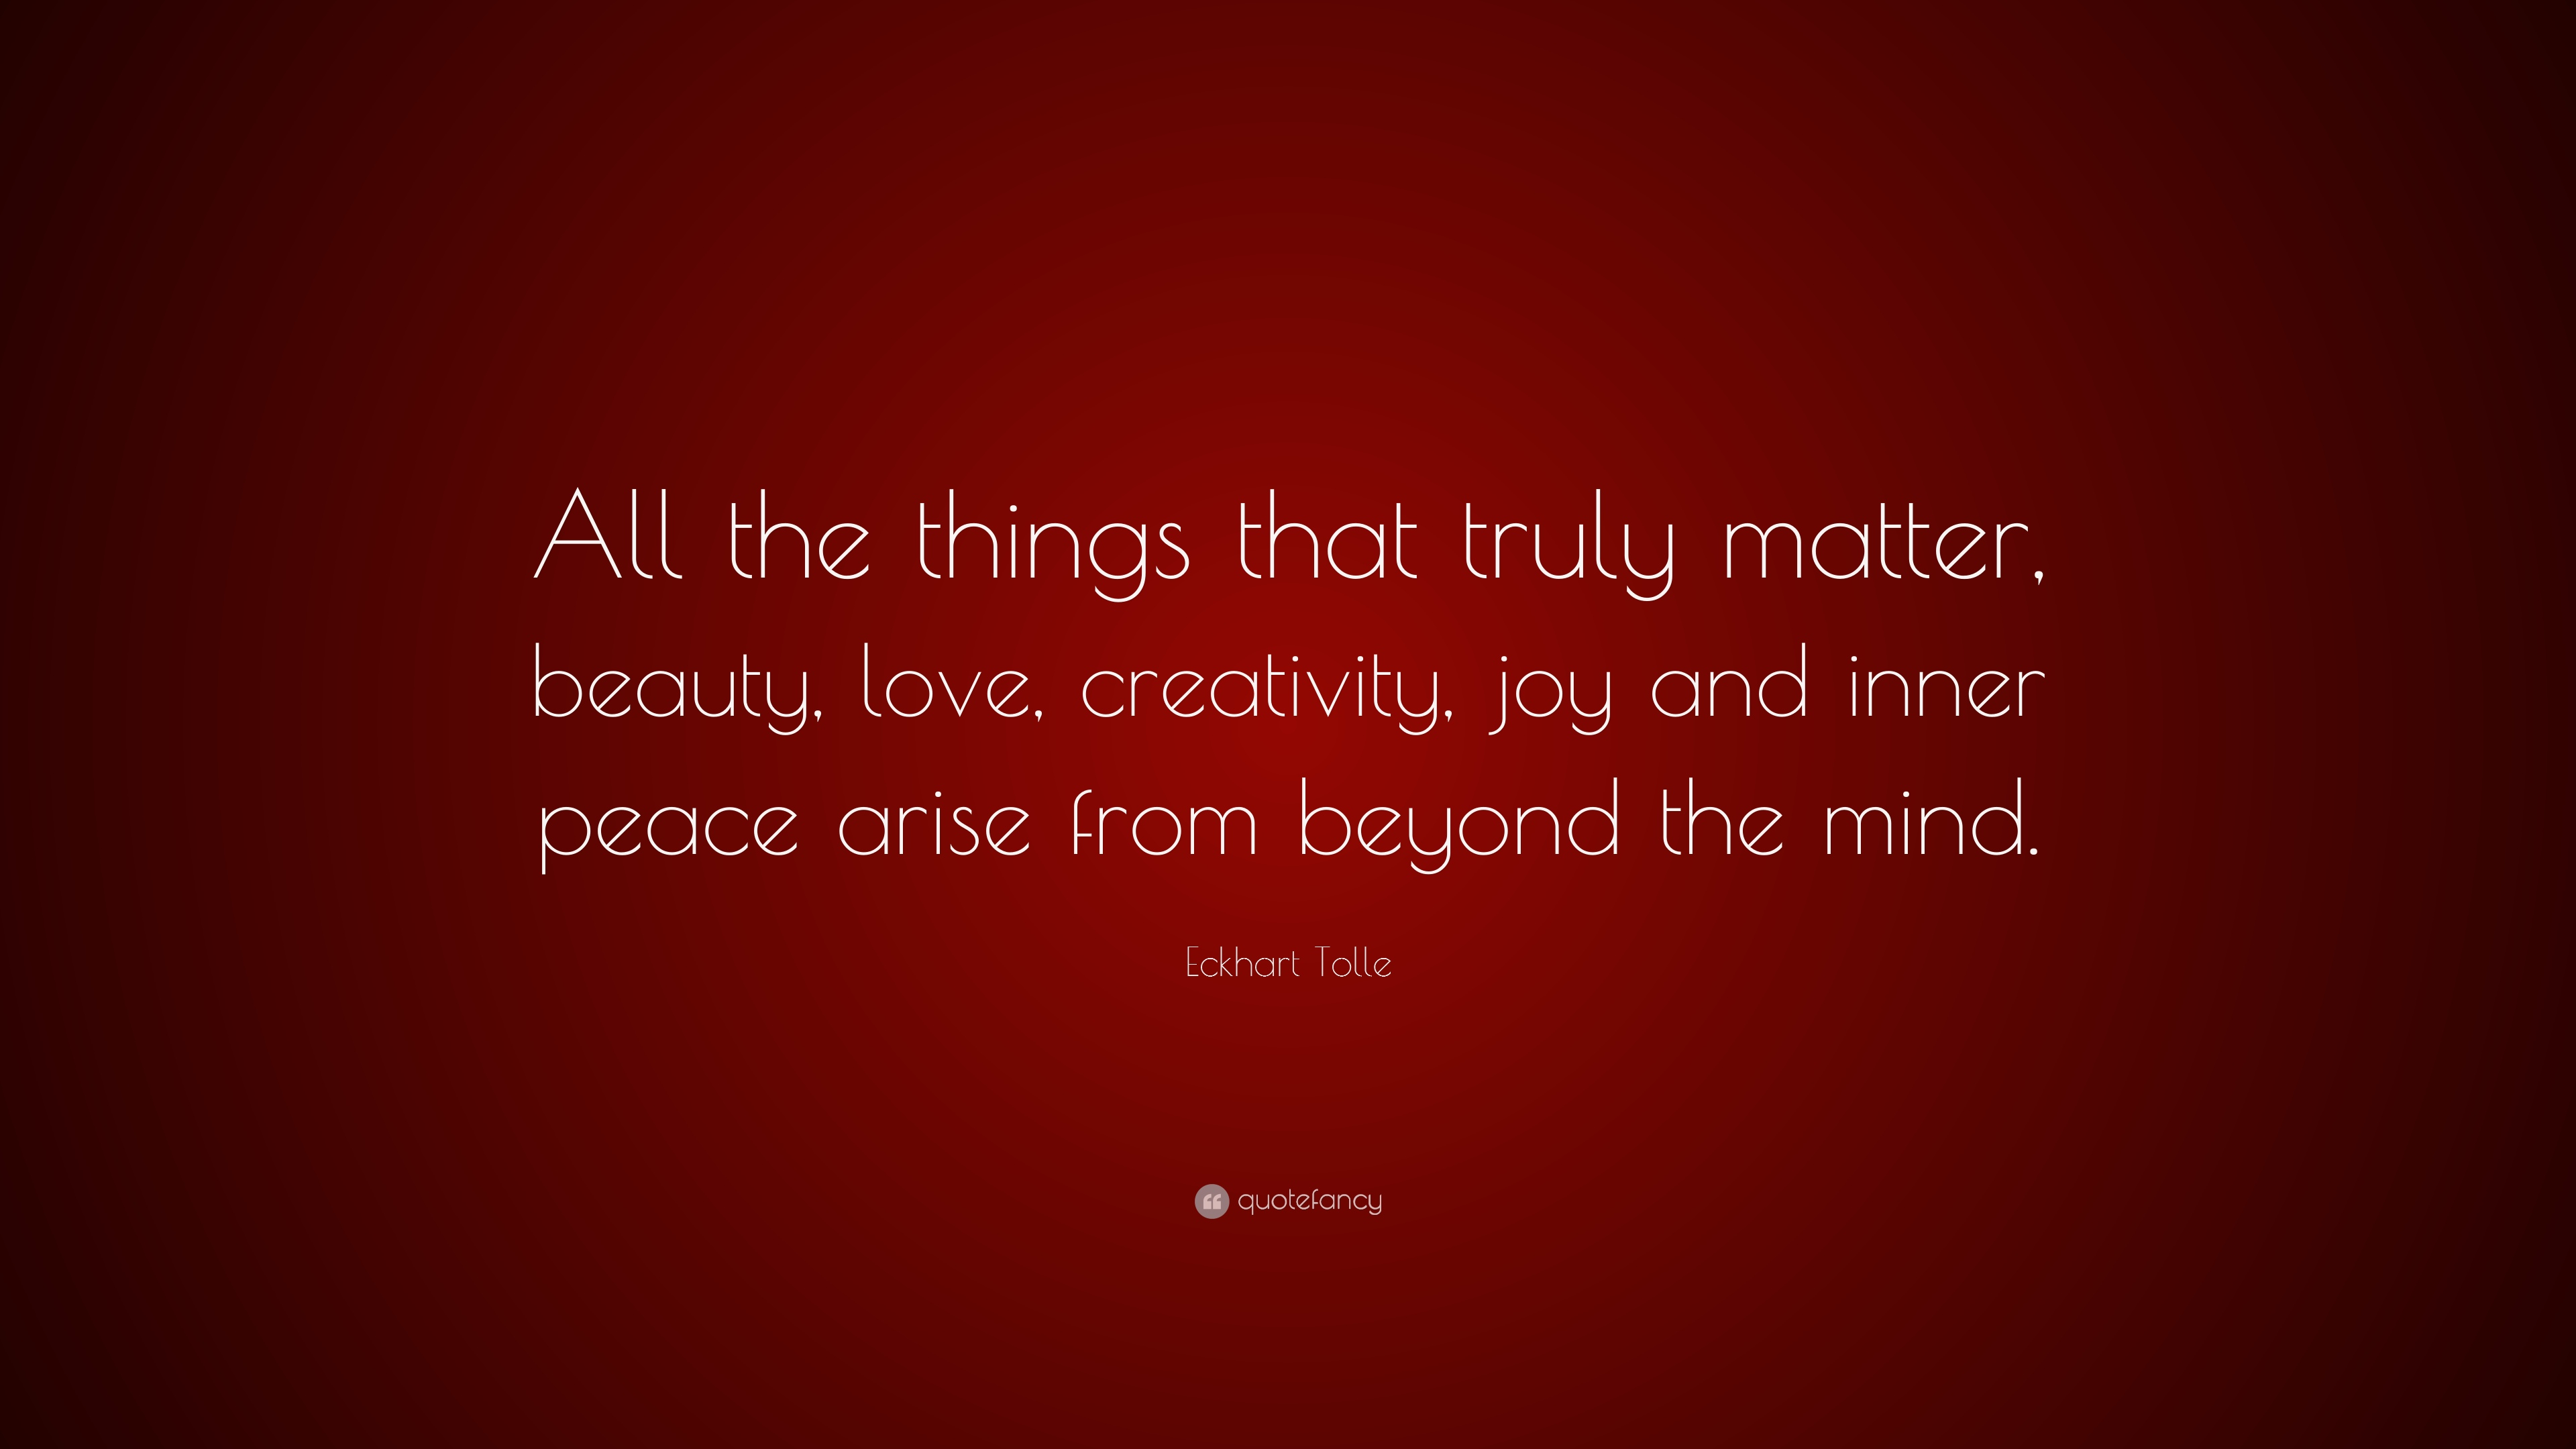 Love Wallpapers Matter : Eckhart Tolle Quote: ?All the things that truly matter, beauty, love, creativity, joy and inner ...